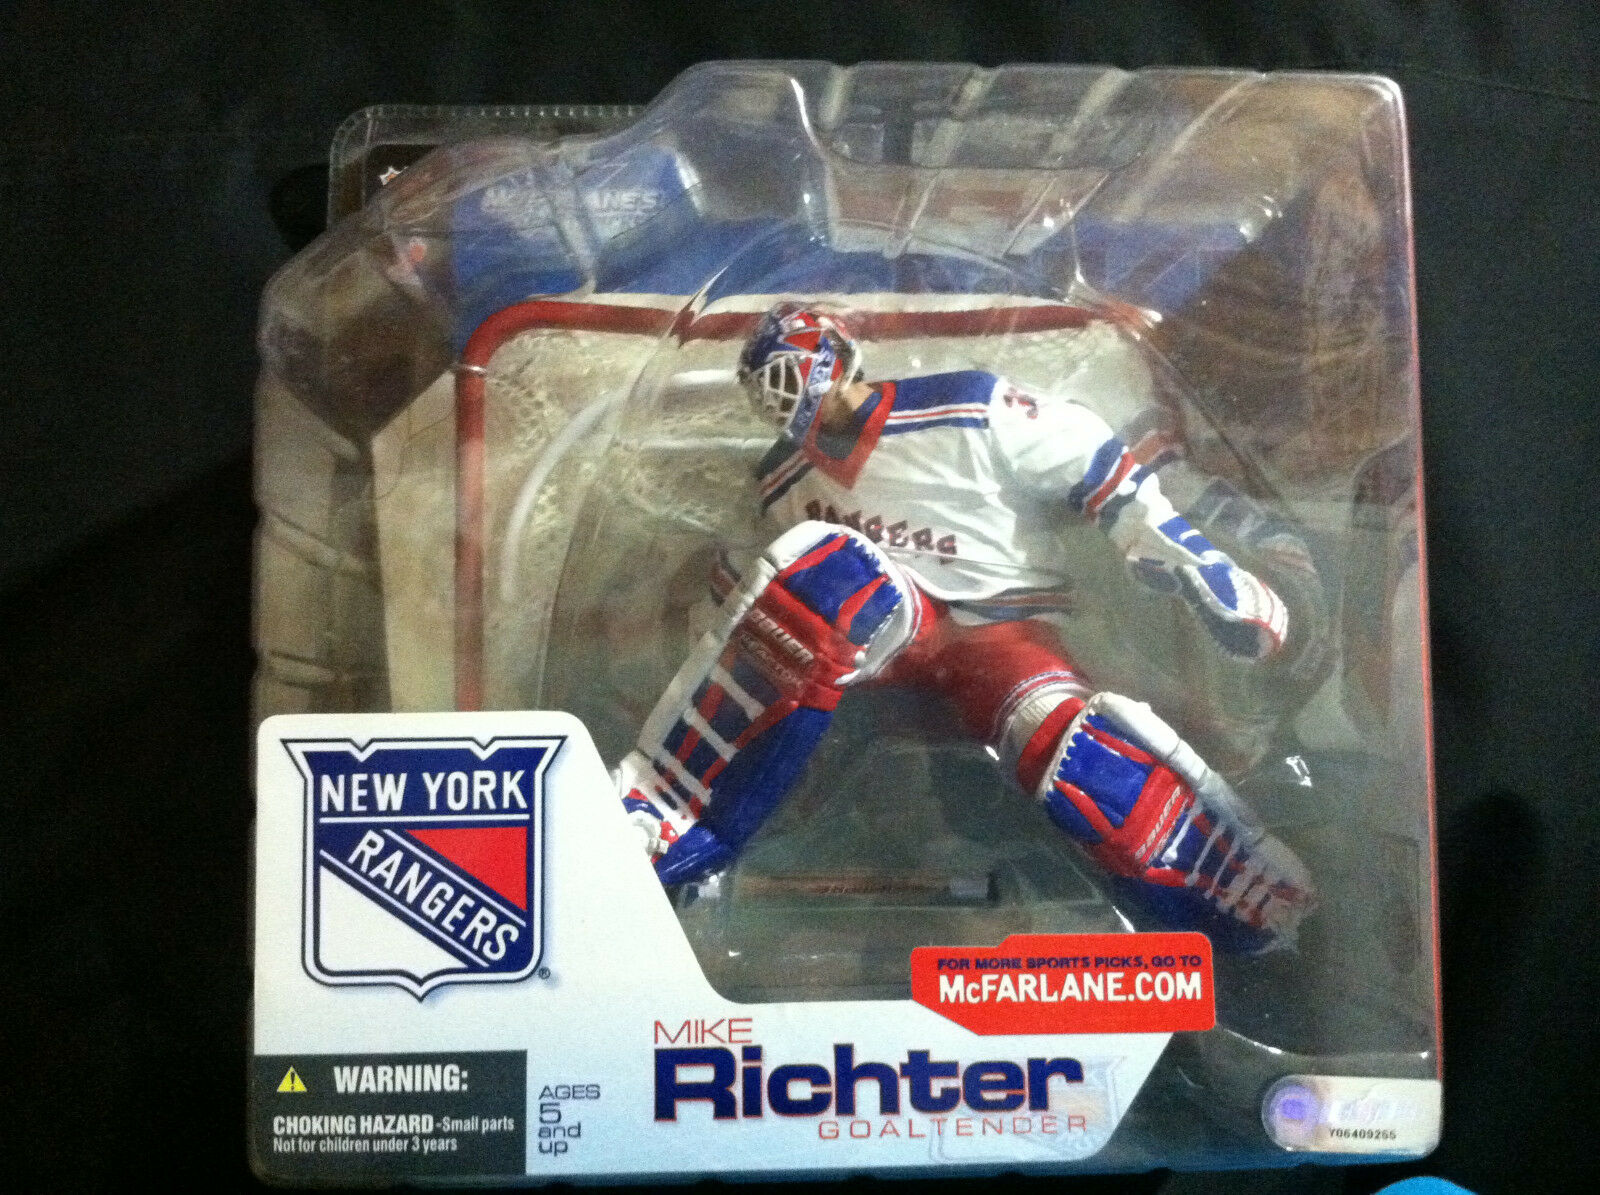 MIKE RICHTER 1994 CHAMPION GOALTENDER WITH NET MCFARLANE FIGURE NEW YORK RANGERS